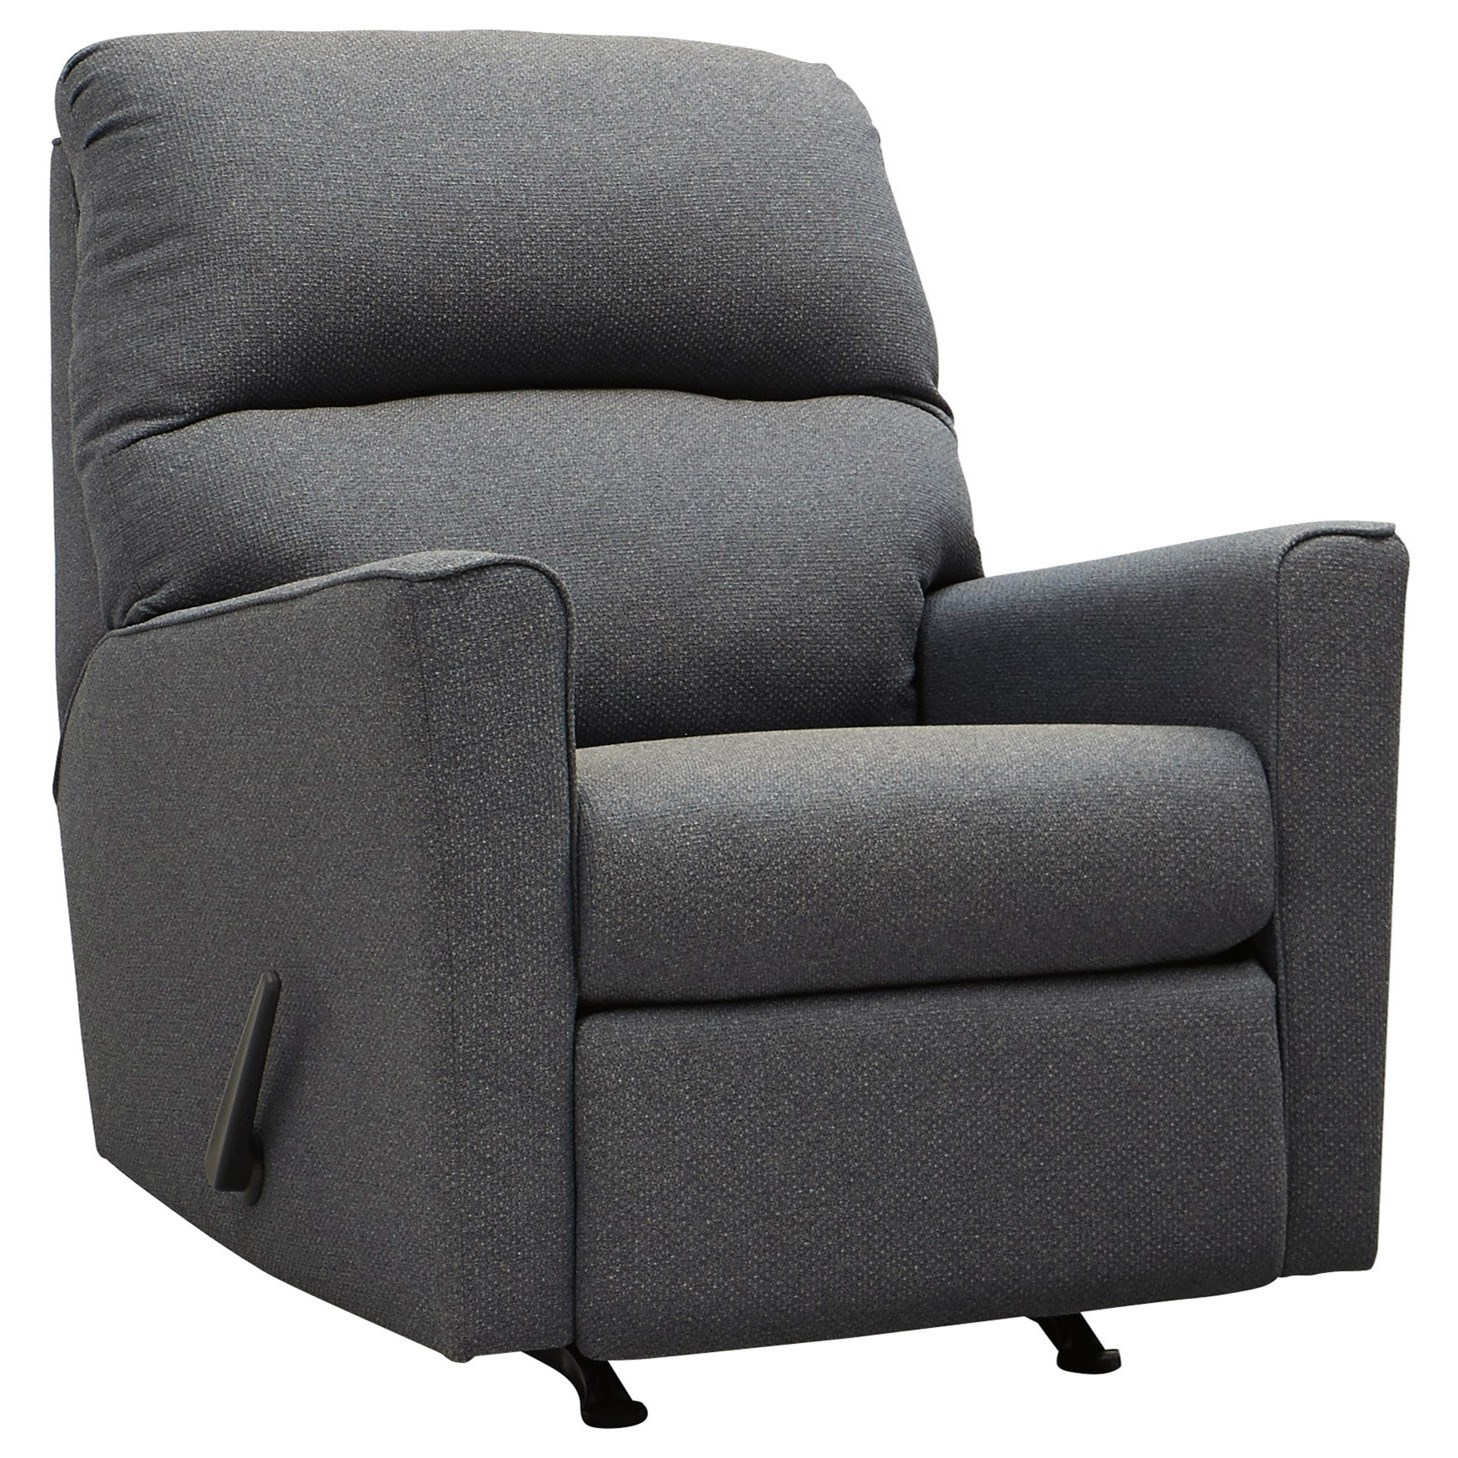 Kiessel Nuvella Rocker Recliner by Benchcraft at Miller Waldrop Furniture and Decor